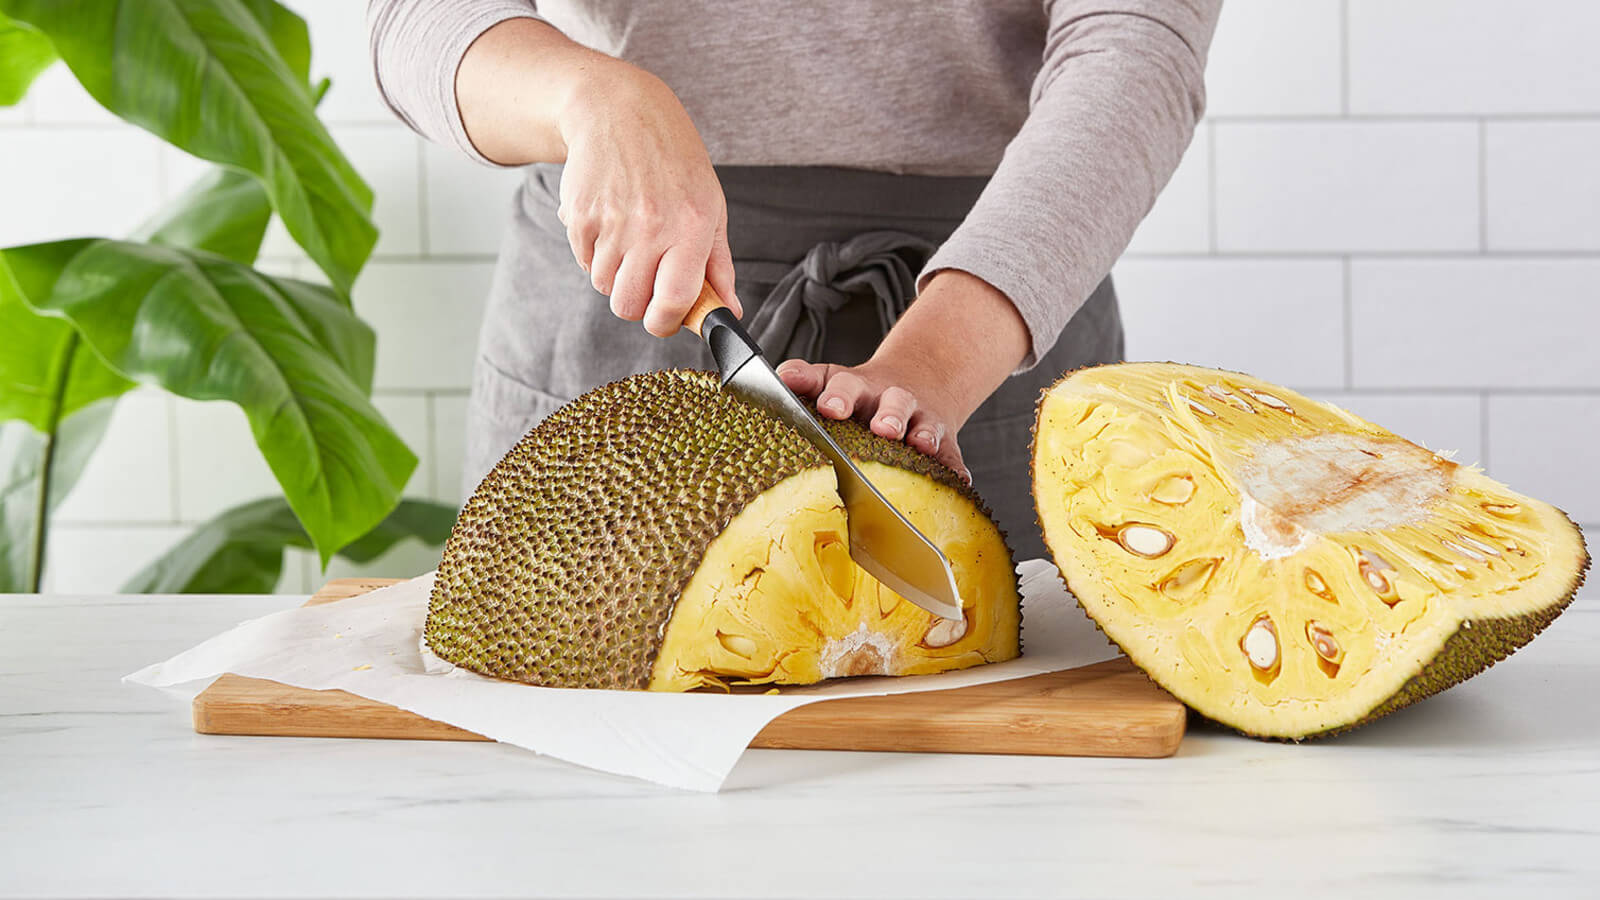 step 3 Slice jackfruit into quarters